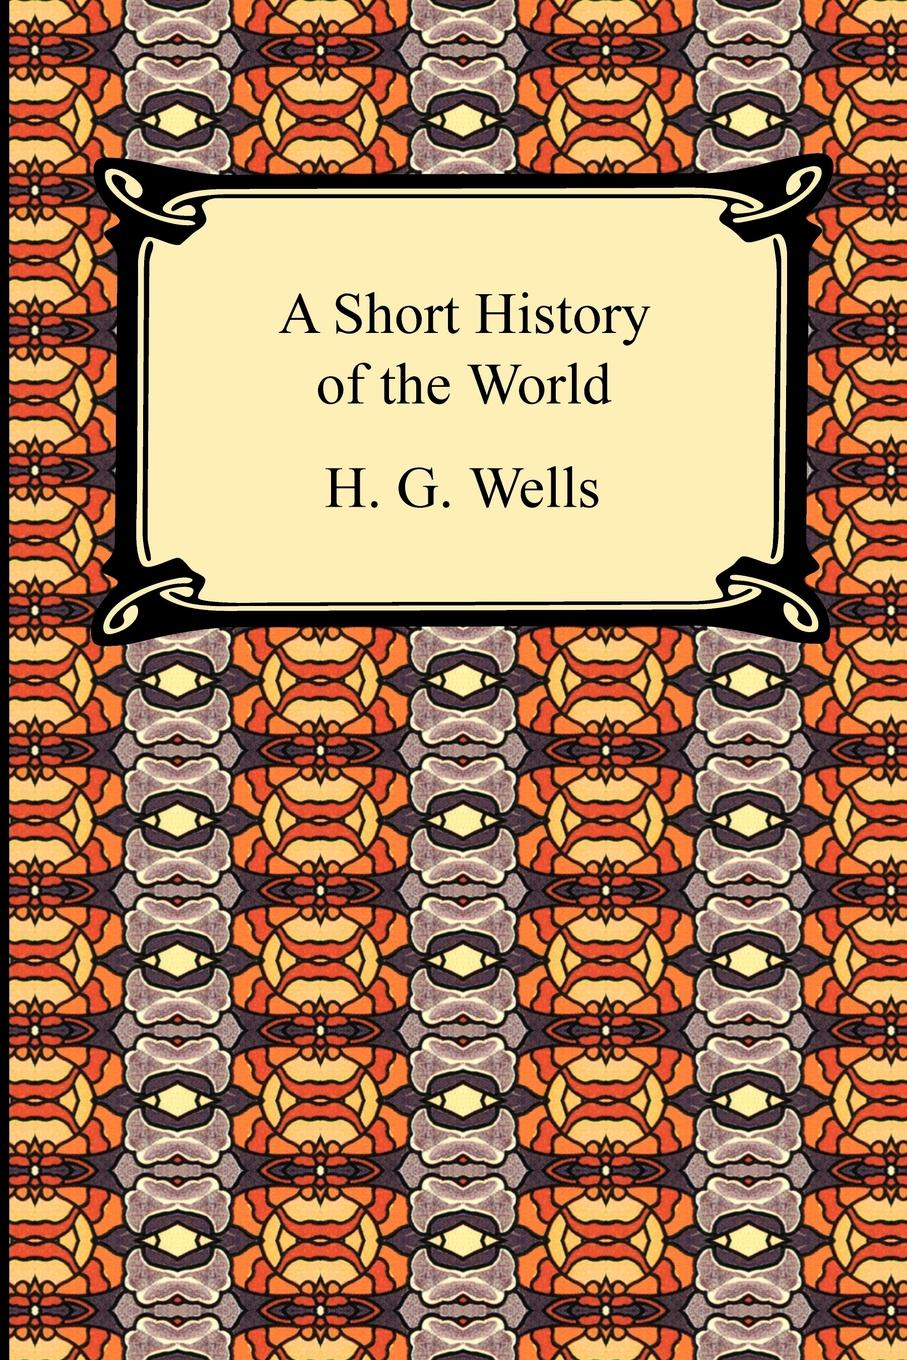 H. G. Wells A Short History of the World hegel the end of history and the future